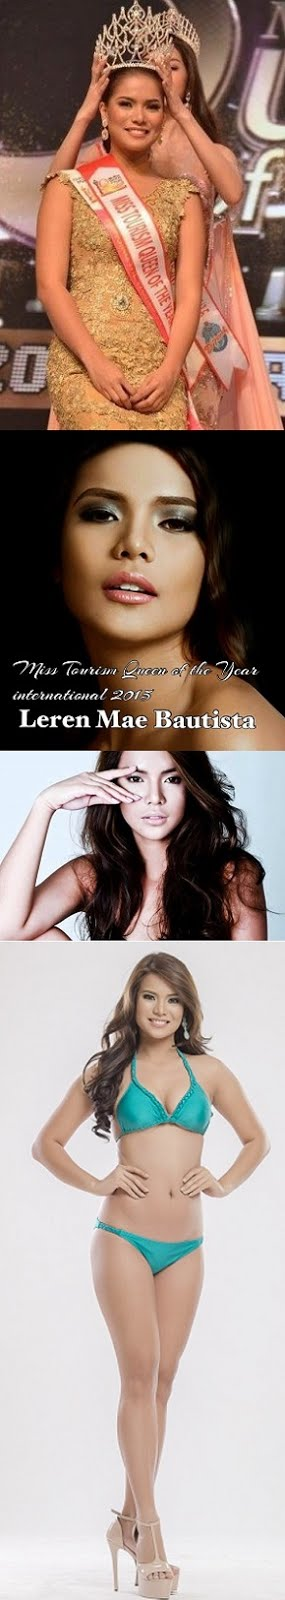 LEREN  MAE  BAUTISTA  WINS  ANOTHER  CROWN  FOR  PHILIPPINES!